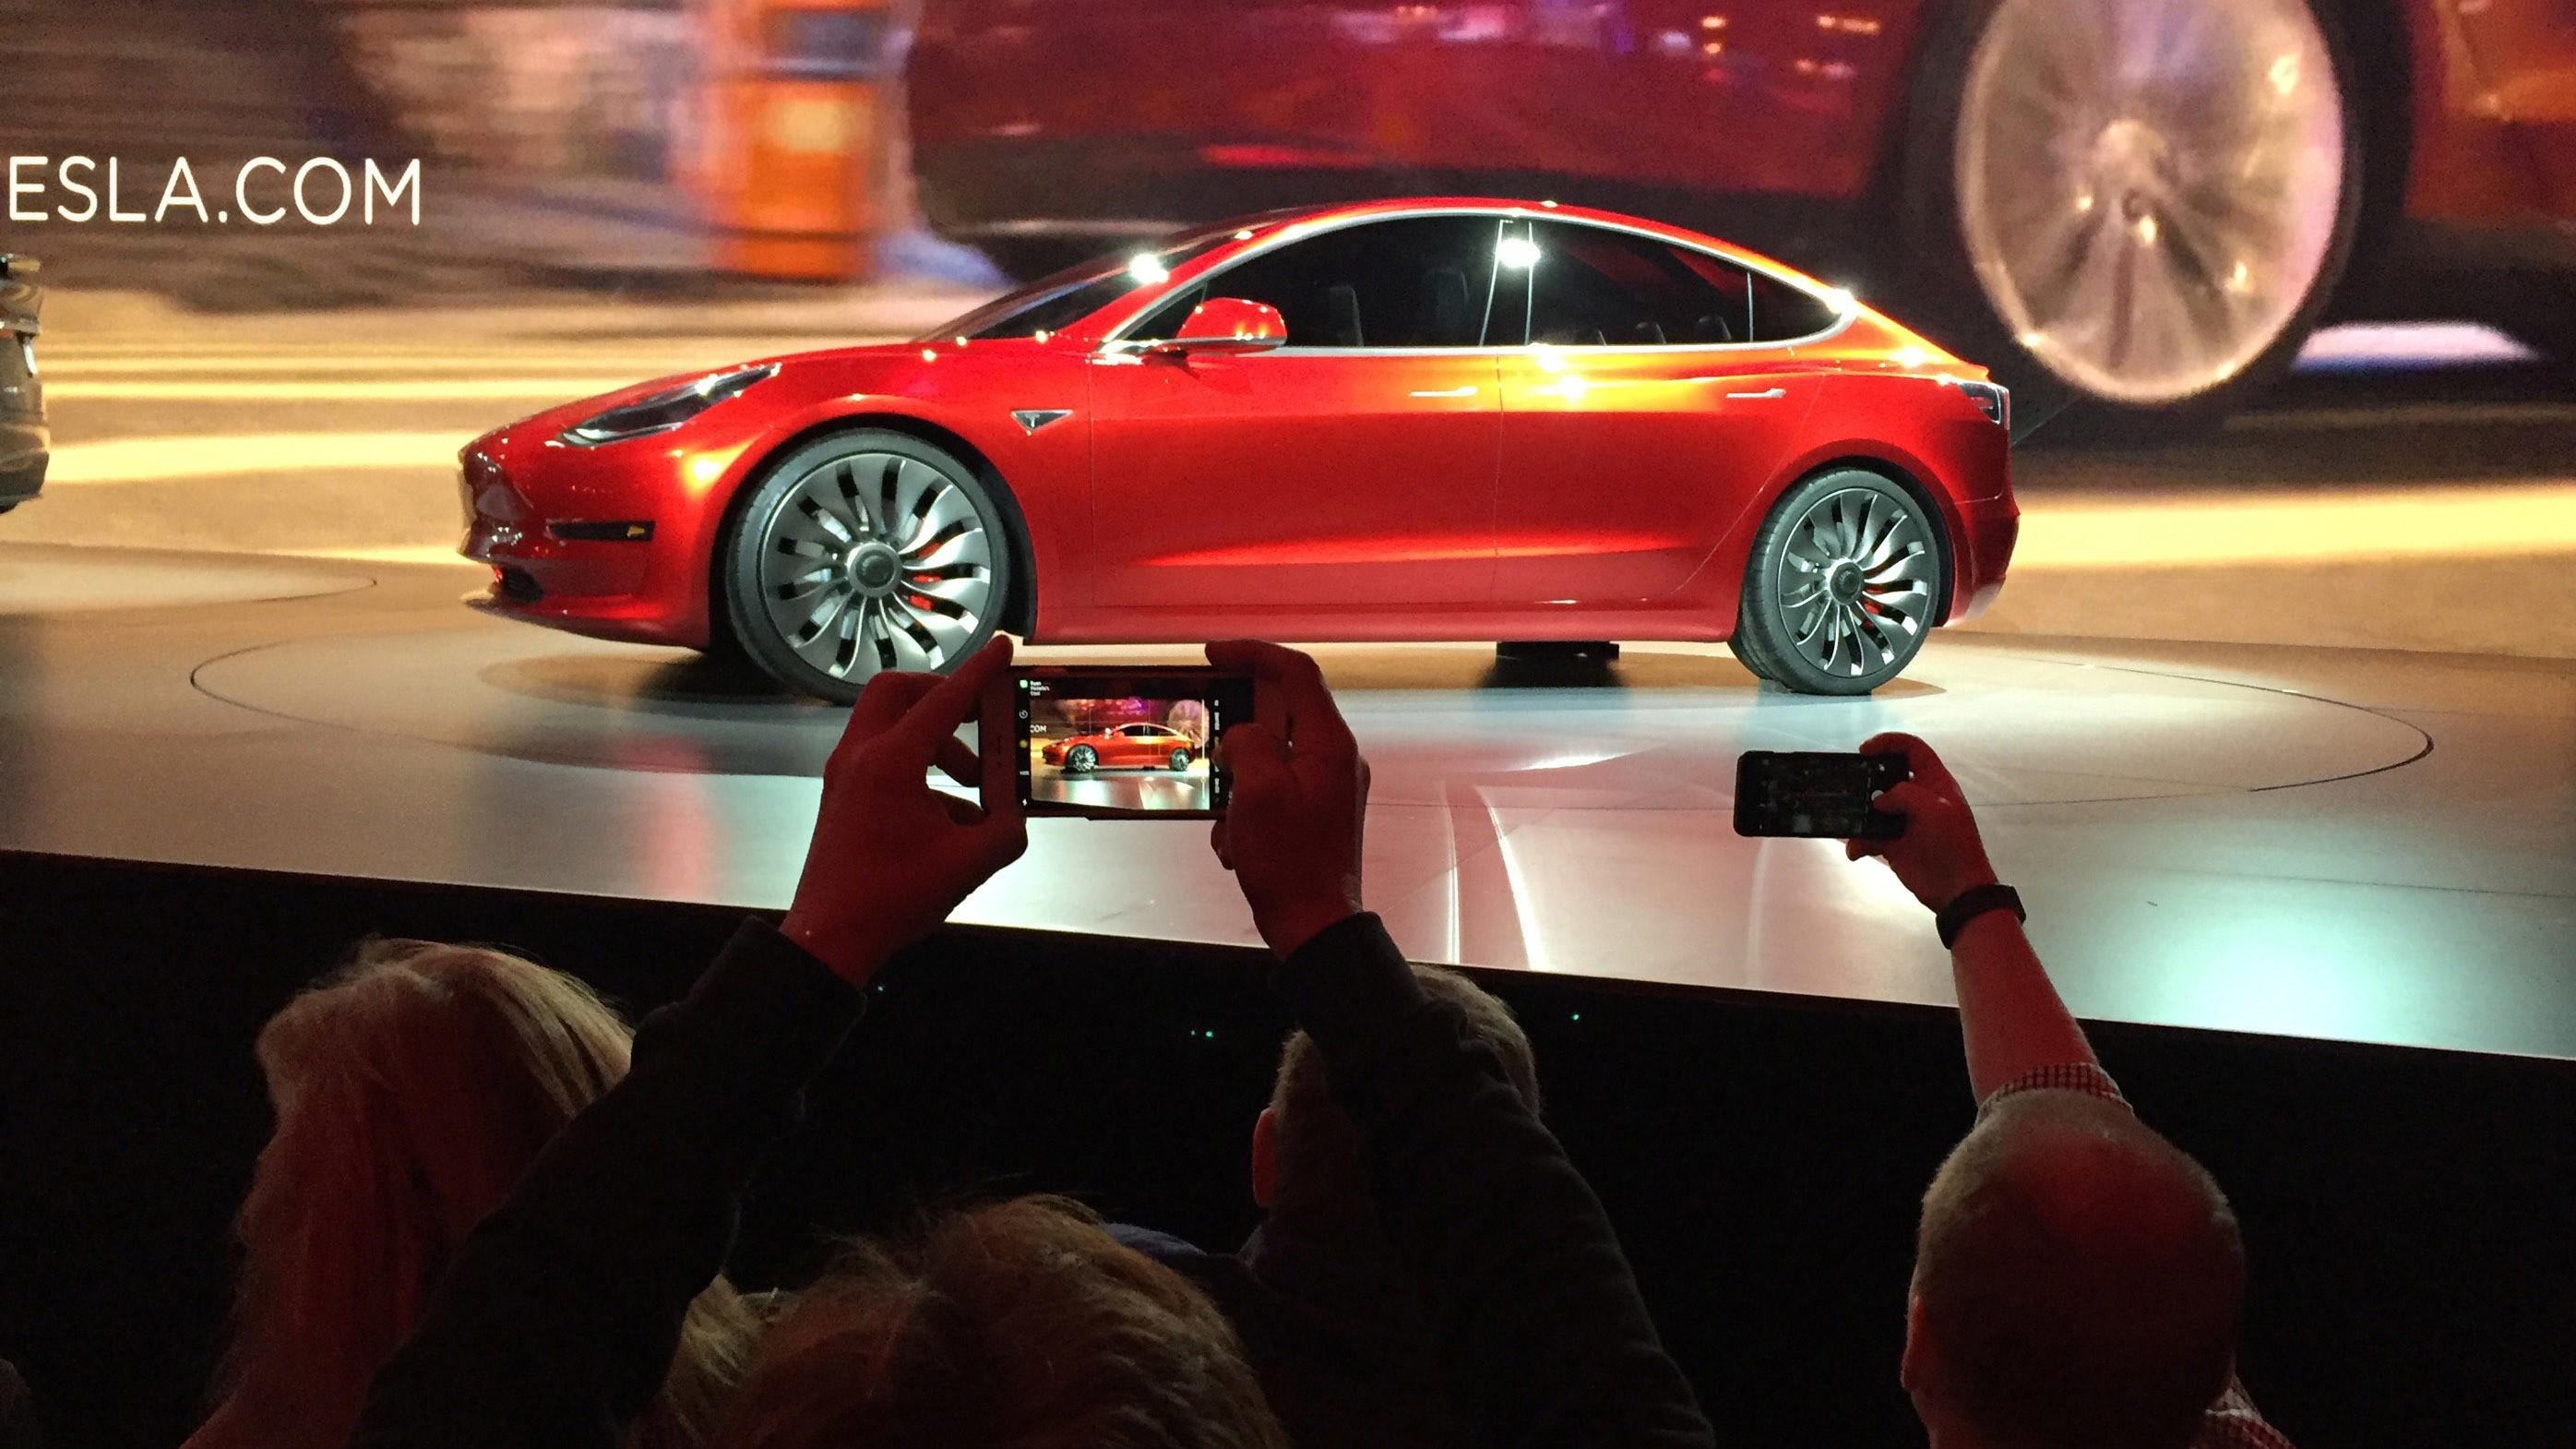 Elon Musk Just Unveiled the Latest Chapter in His 'Secret Master Plan'